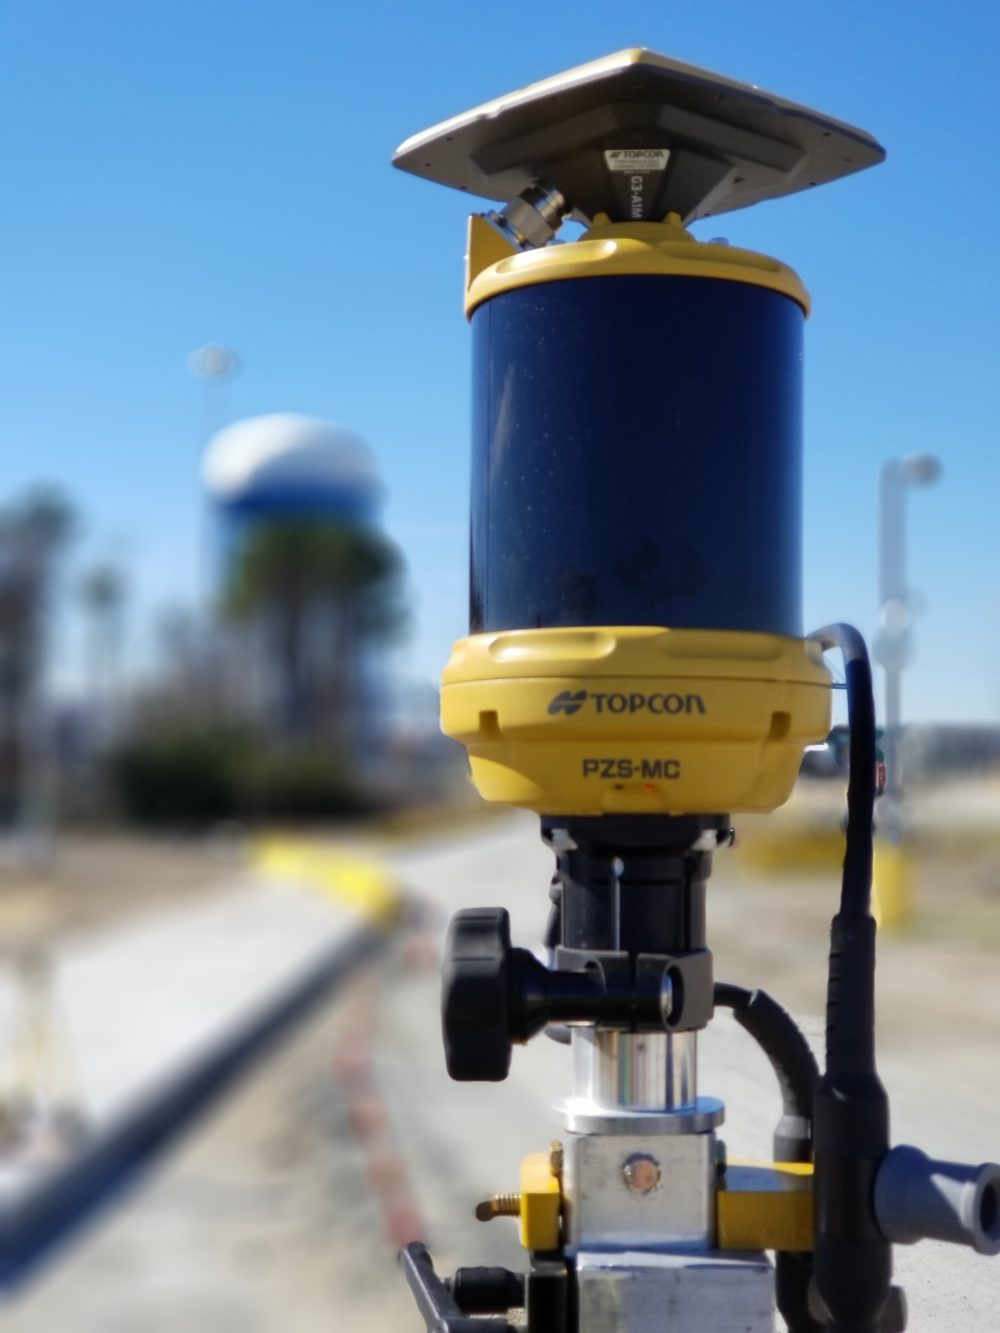 Topcon Millimeter GPS Paver System technology is Integral to Concrete Paving as Millimeter GPS raises the bar